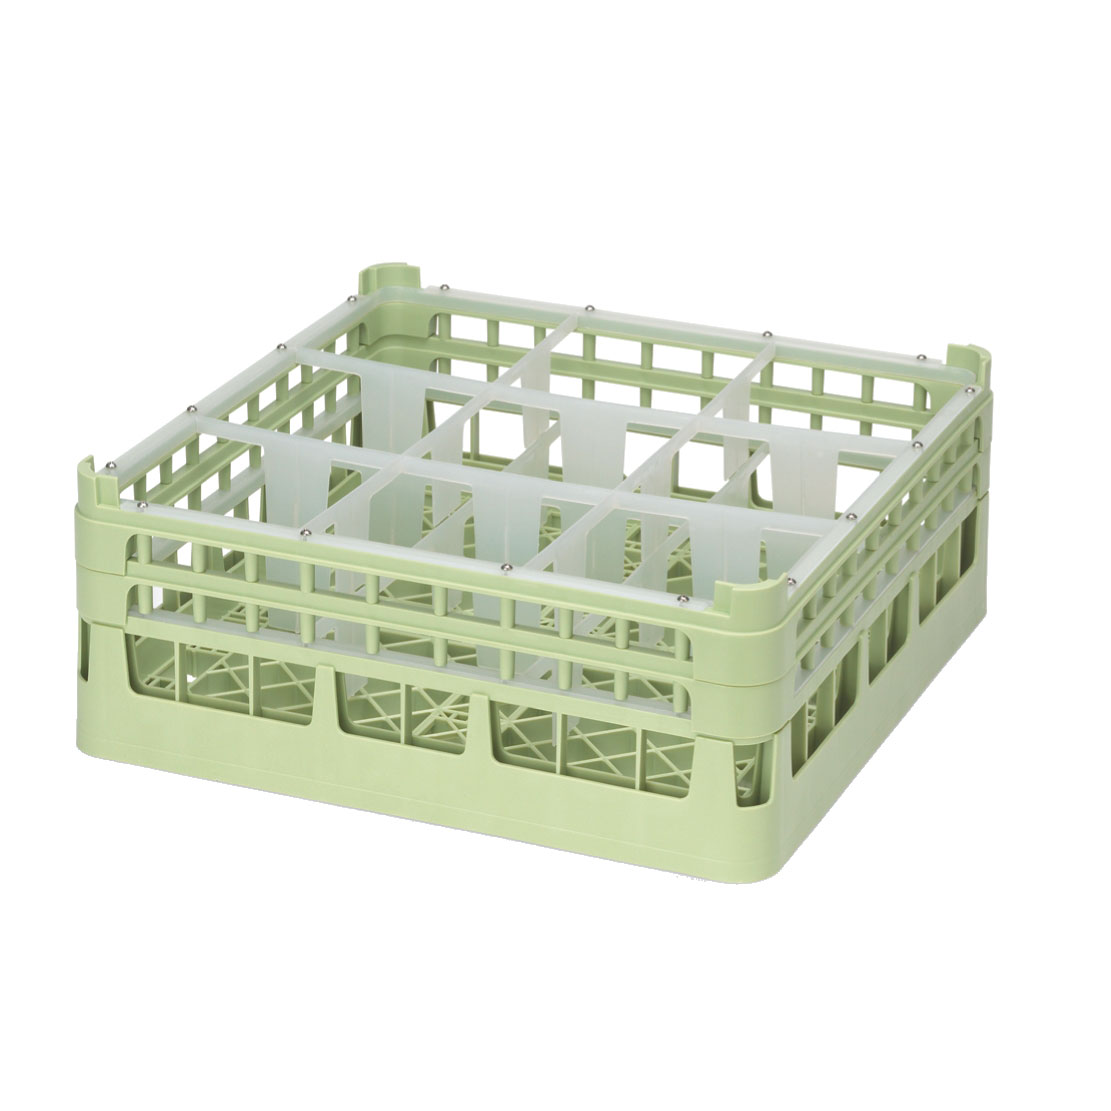 Vollrath 52764 dishwasher rack, glass compartment